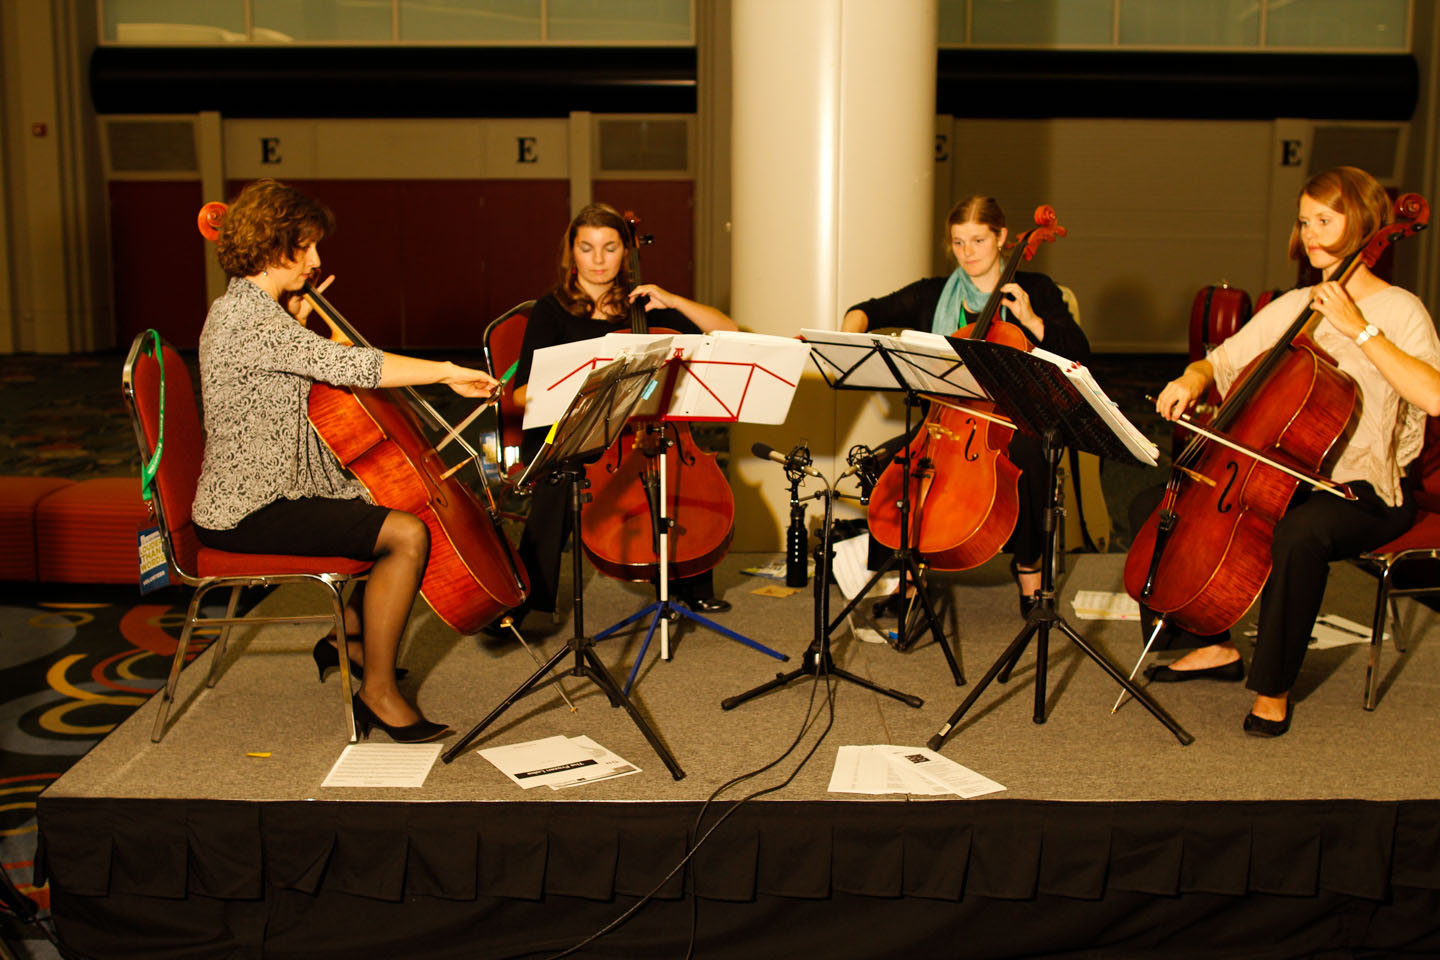 A cello quartet plays